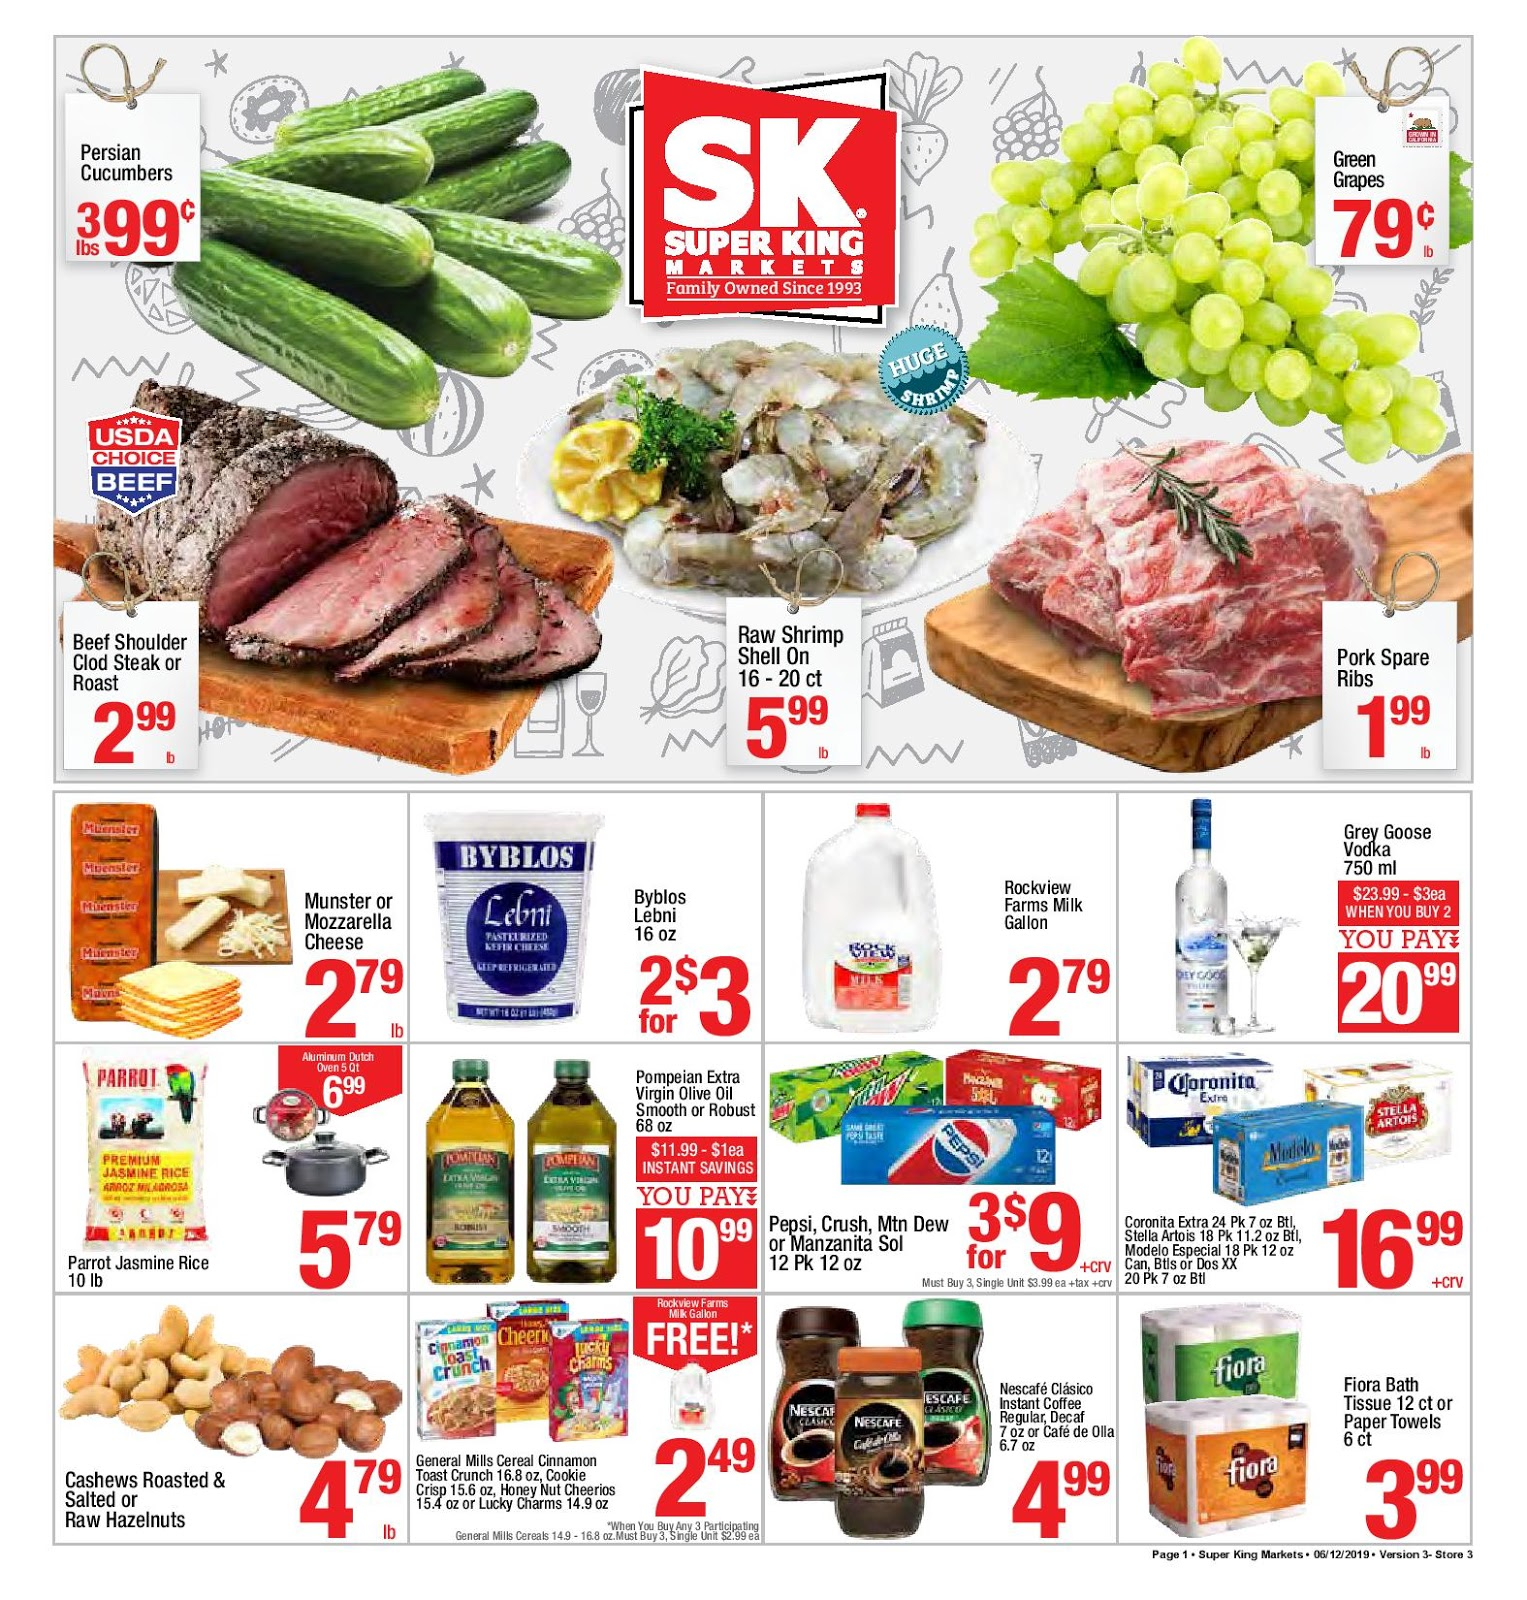 Super King Ad This Week June 26 July 2 2019